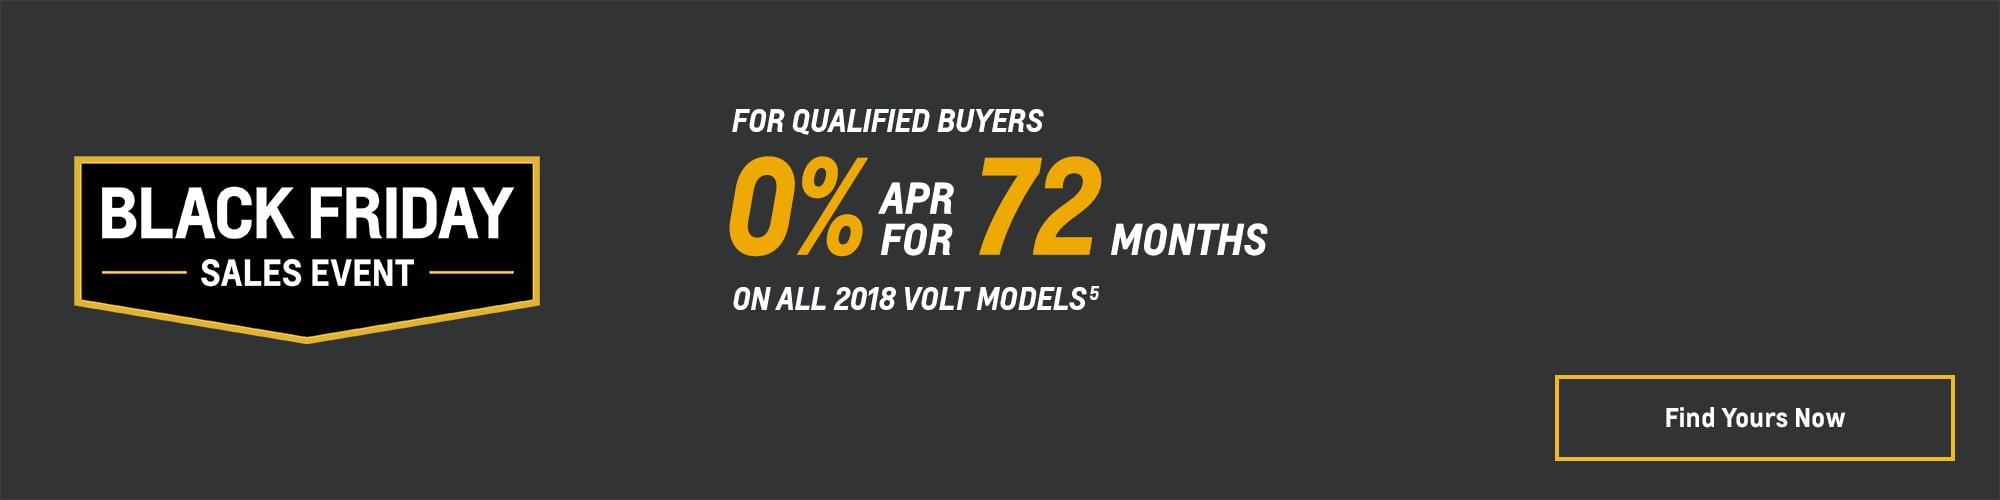 Black Friday Chevy Deals and Offers: 2018 Volt 0% APR